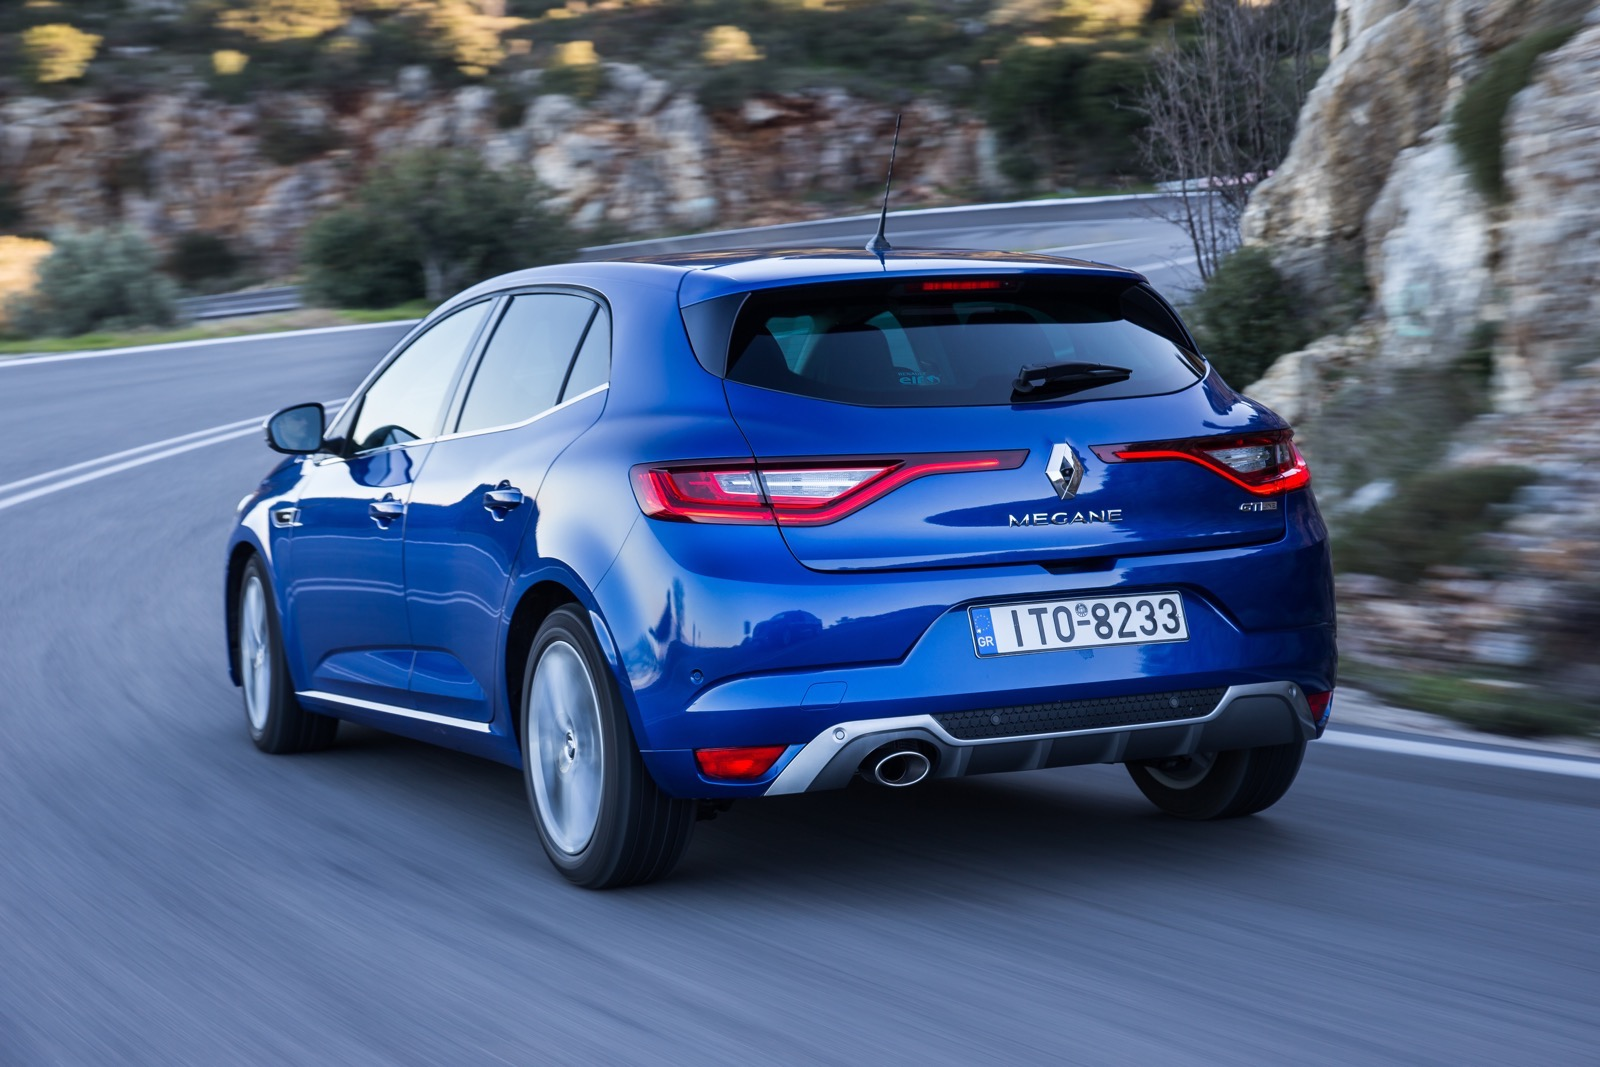 First_Drive_Renault_Megane_91